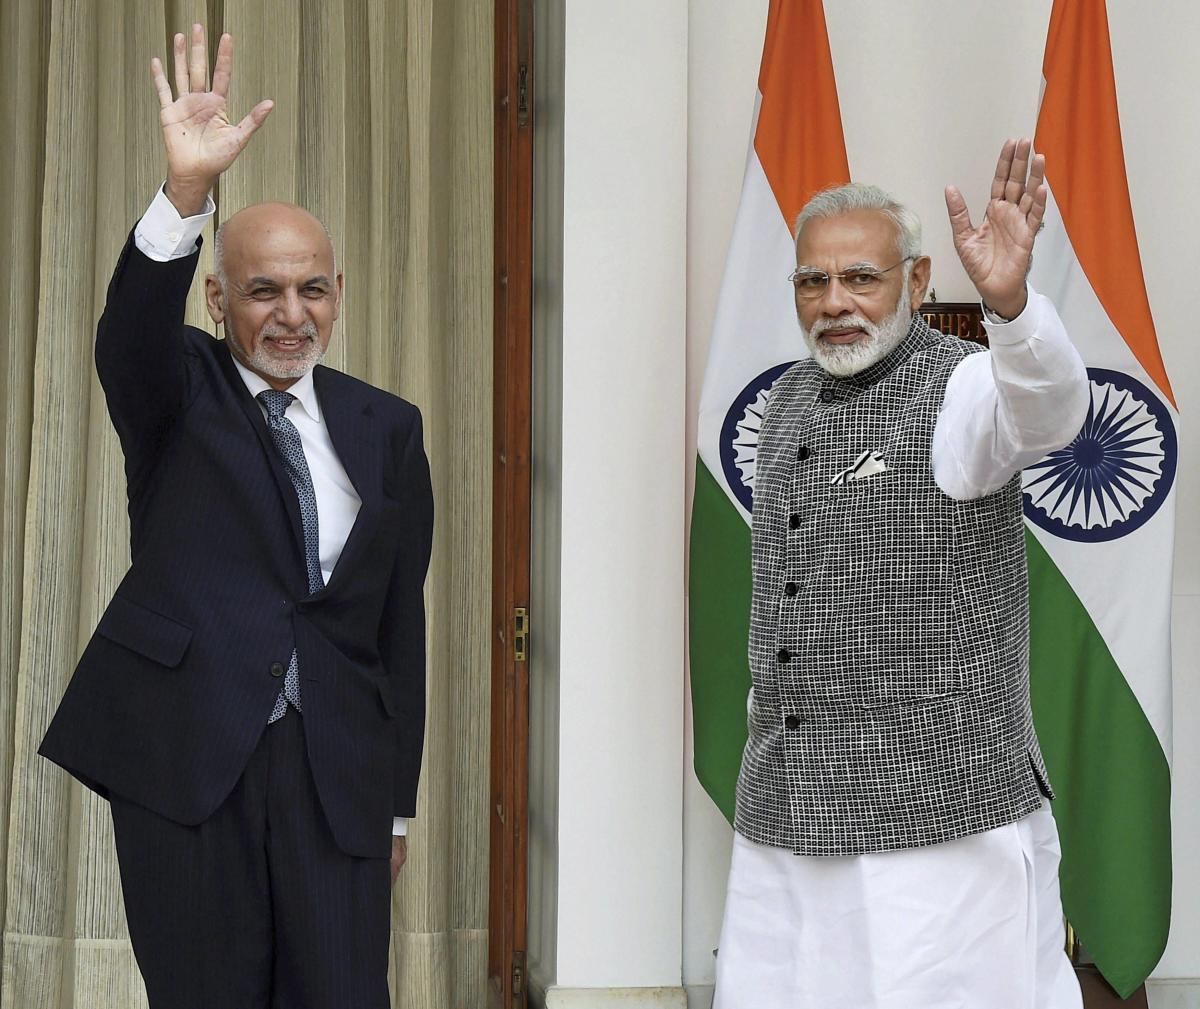 Prime Minister Narendra Modi and the President of the Islamic Republic of Afghanistan, Mohammad Ashraf Ghani. (PTI FIle Photo)